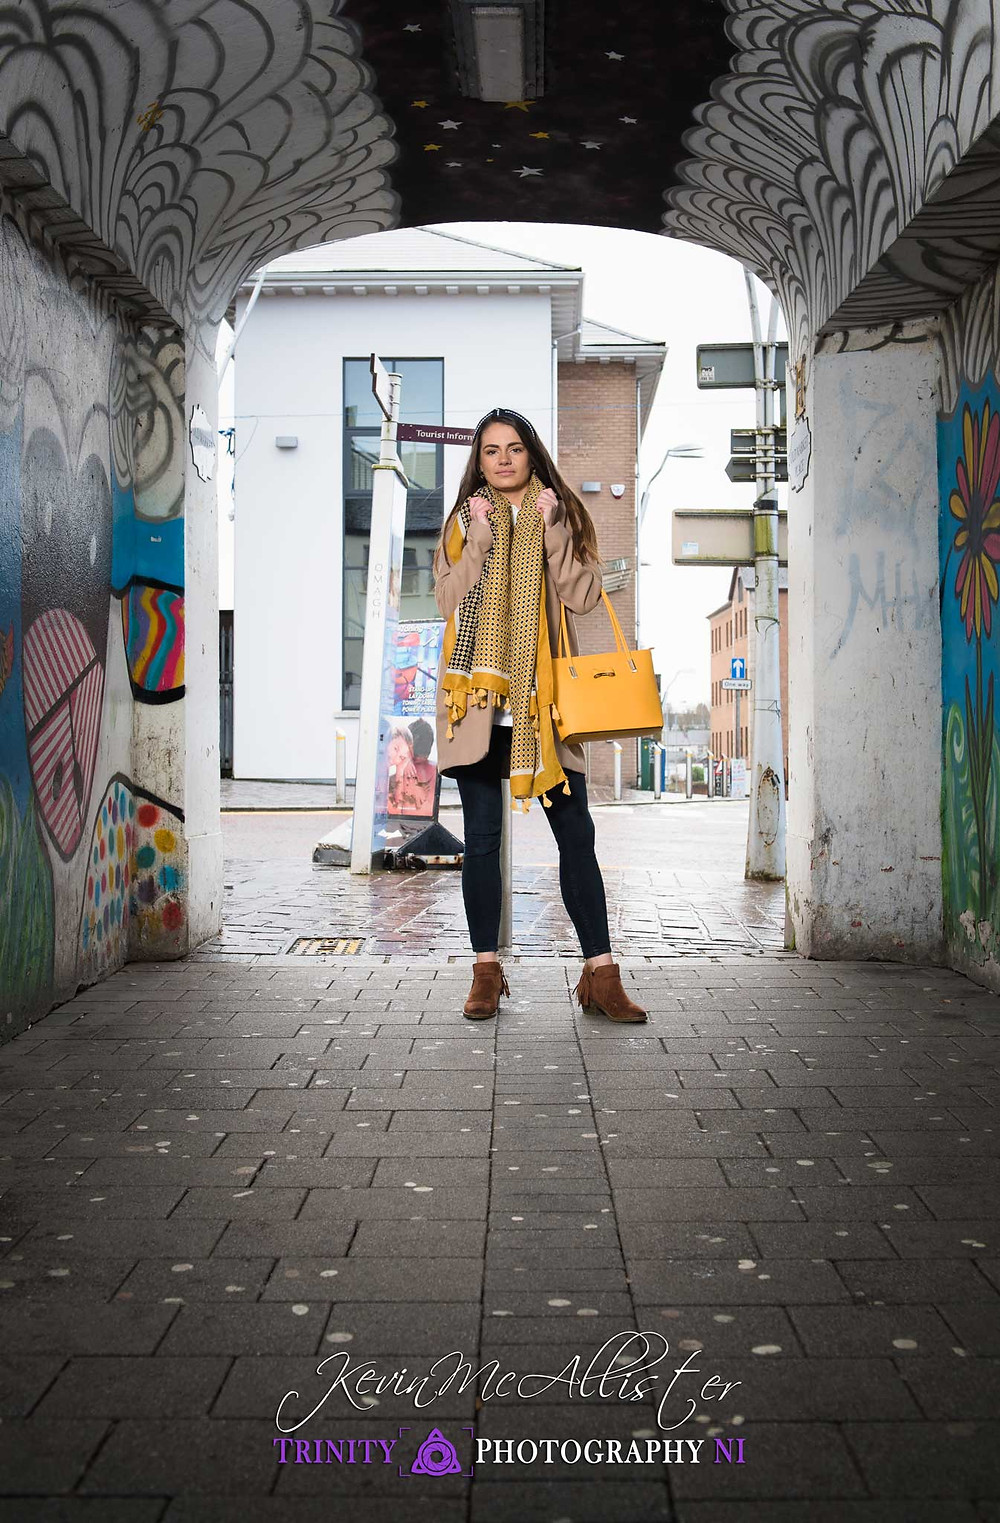 autumnal colours fashion model in a alley in Omagh